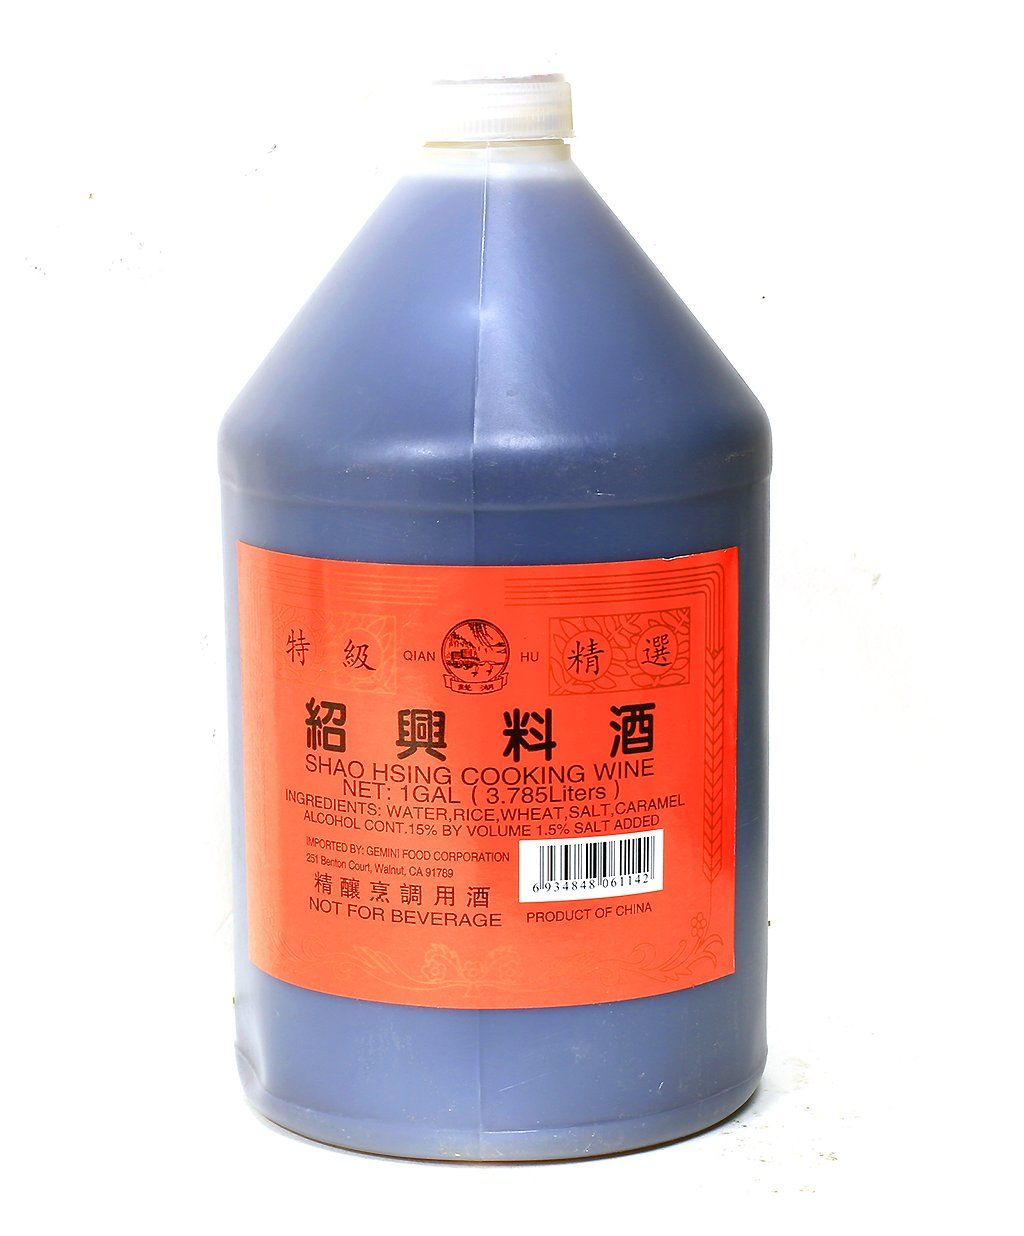 SHAOHSING RICE COOKING WINE 1 GALLON / 3.785 LITERS